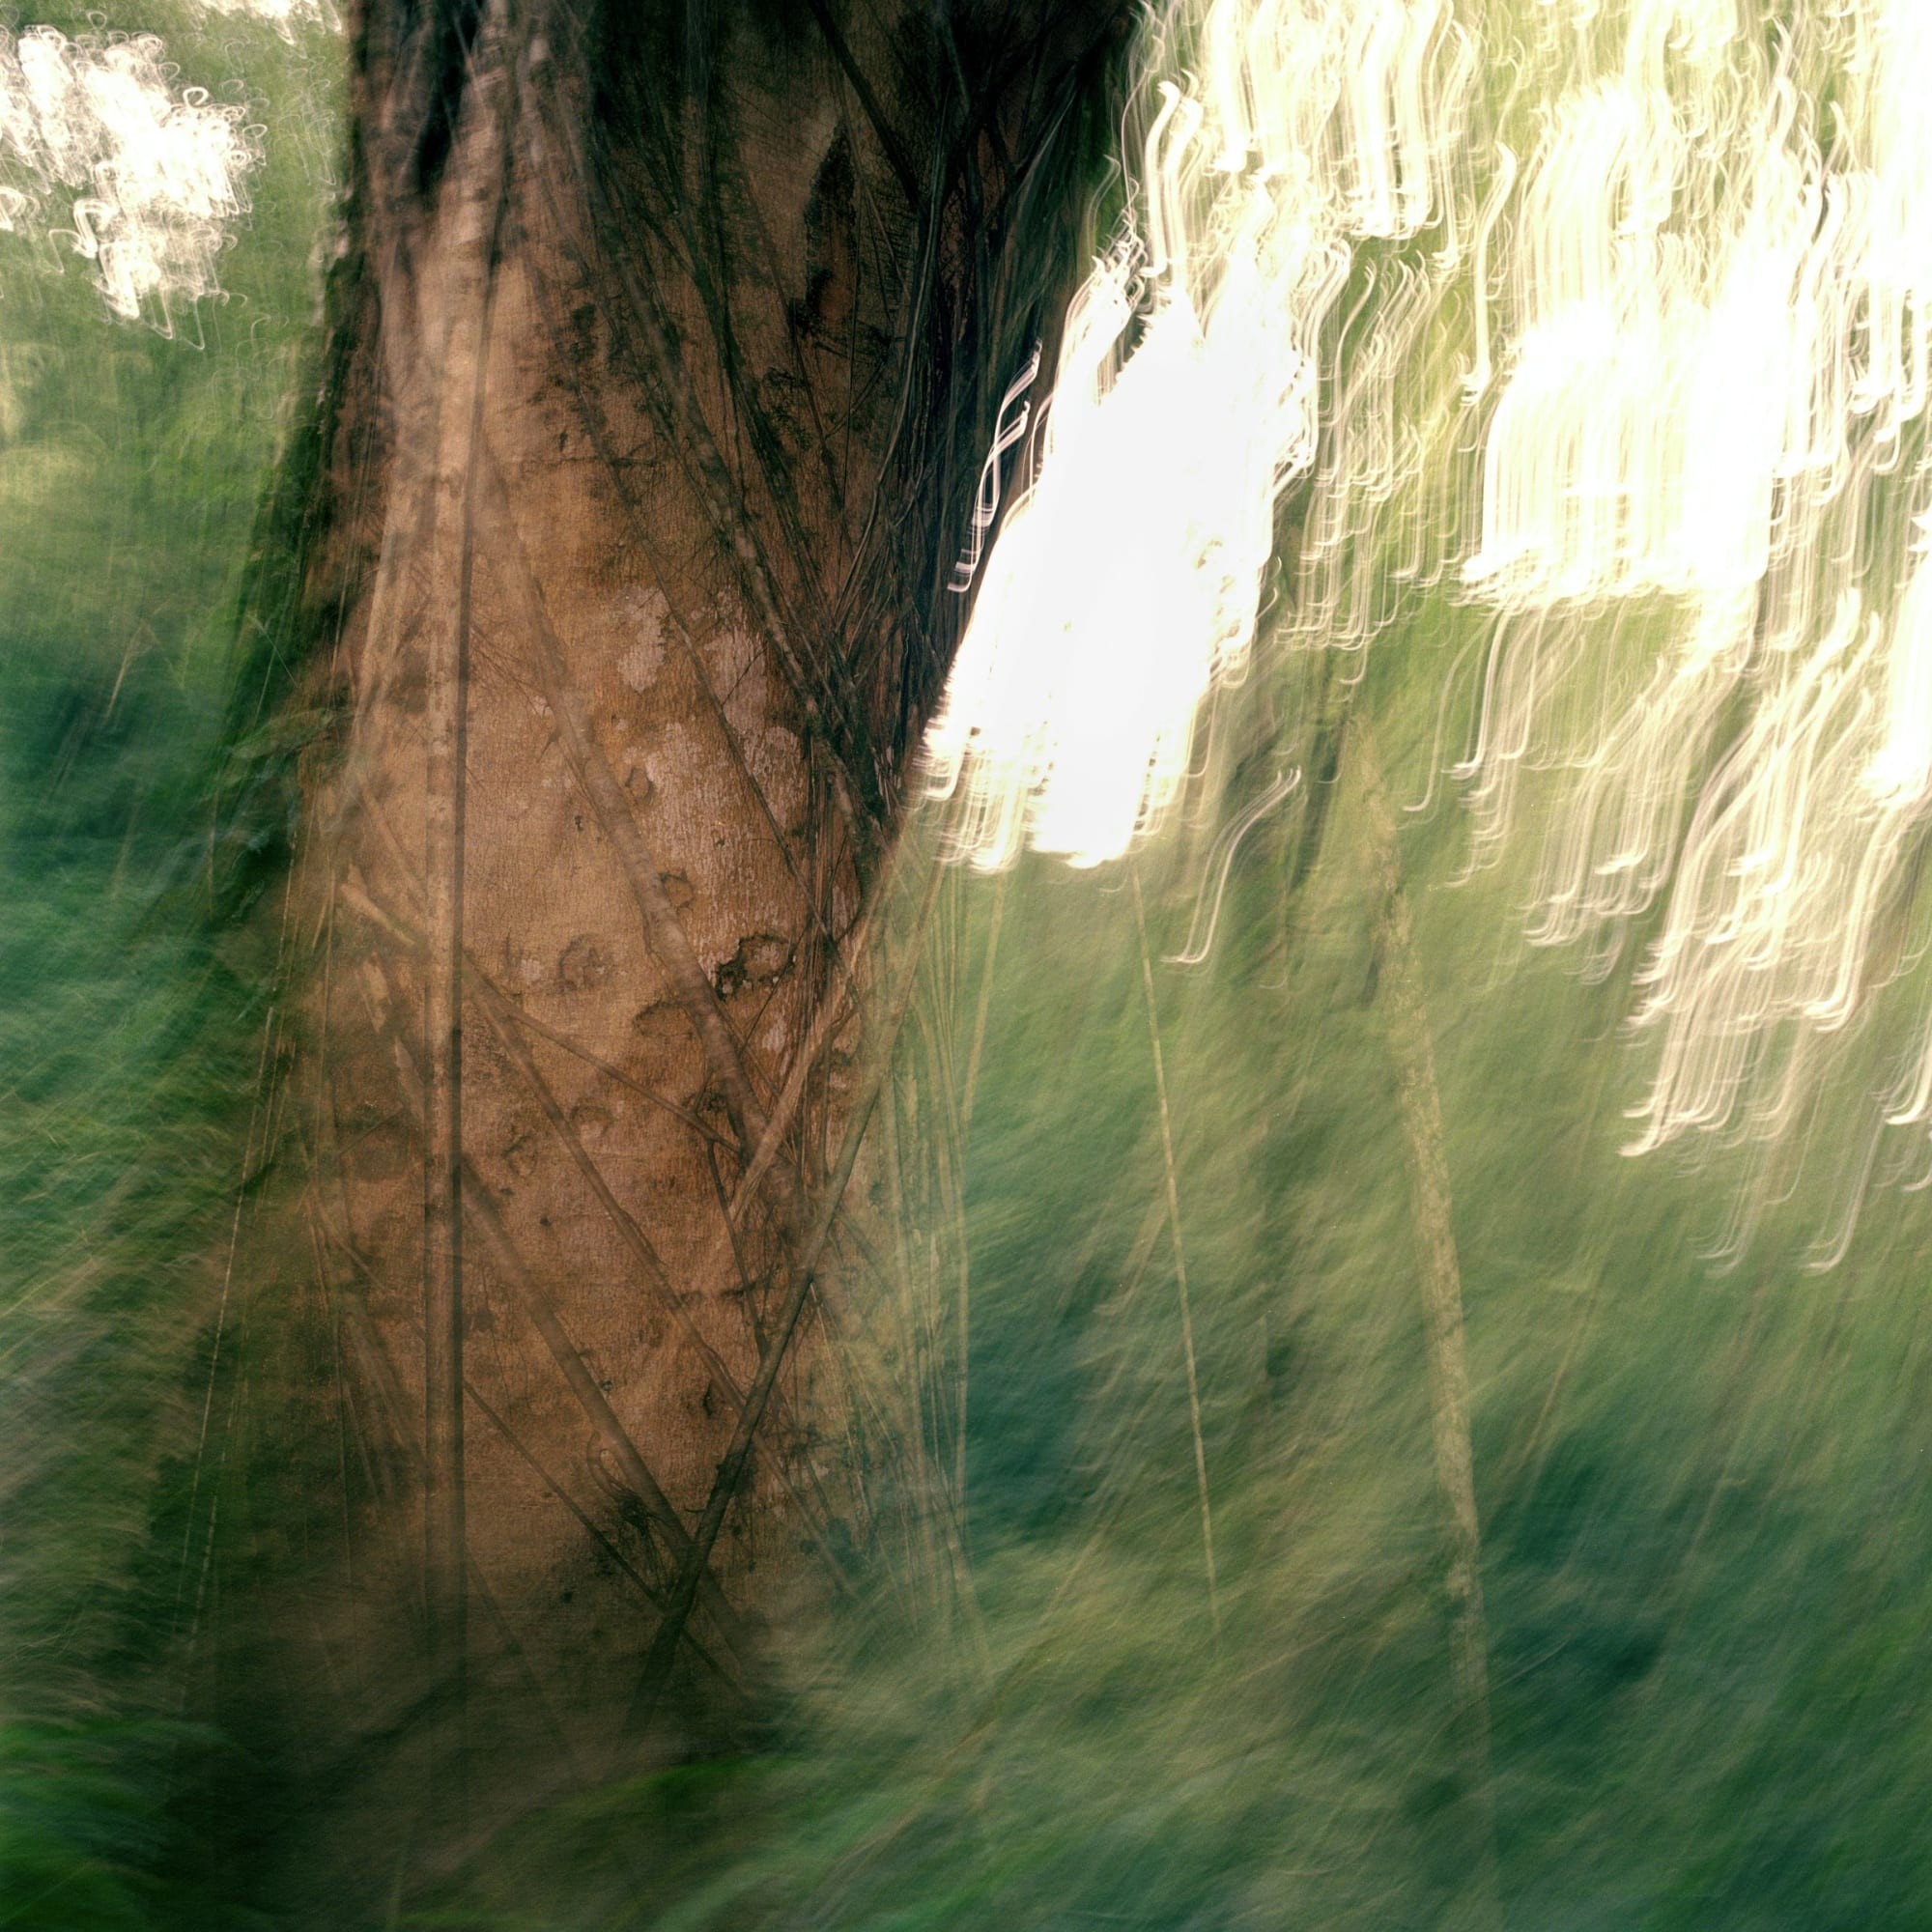 Photography by Tabitha Soren seen at Downtown, San Francisco, CA, San Francisco - Weathering series - Trees